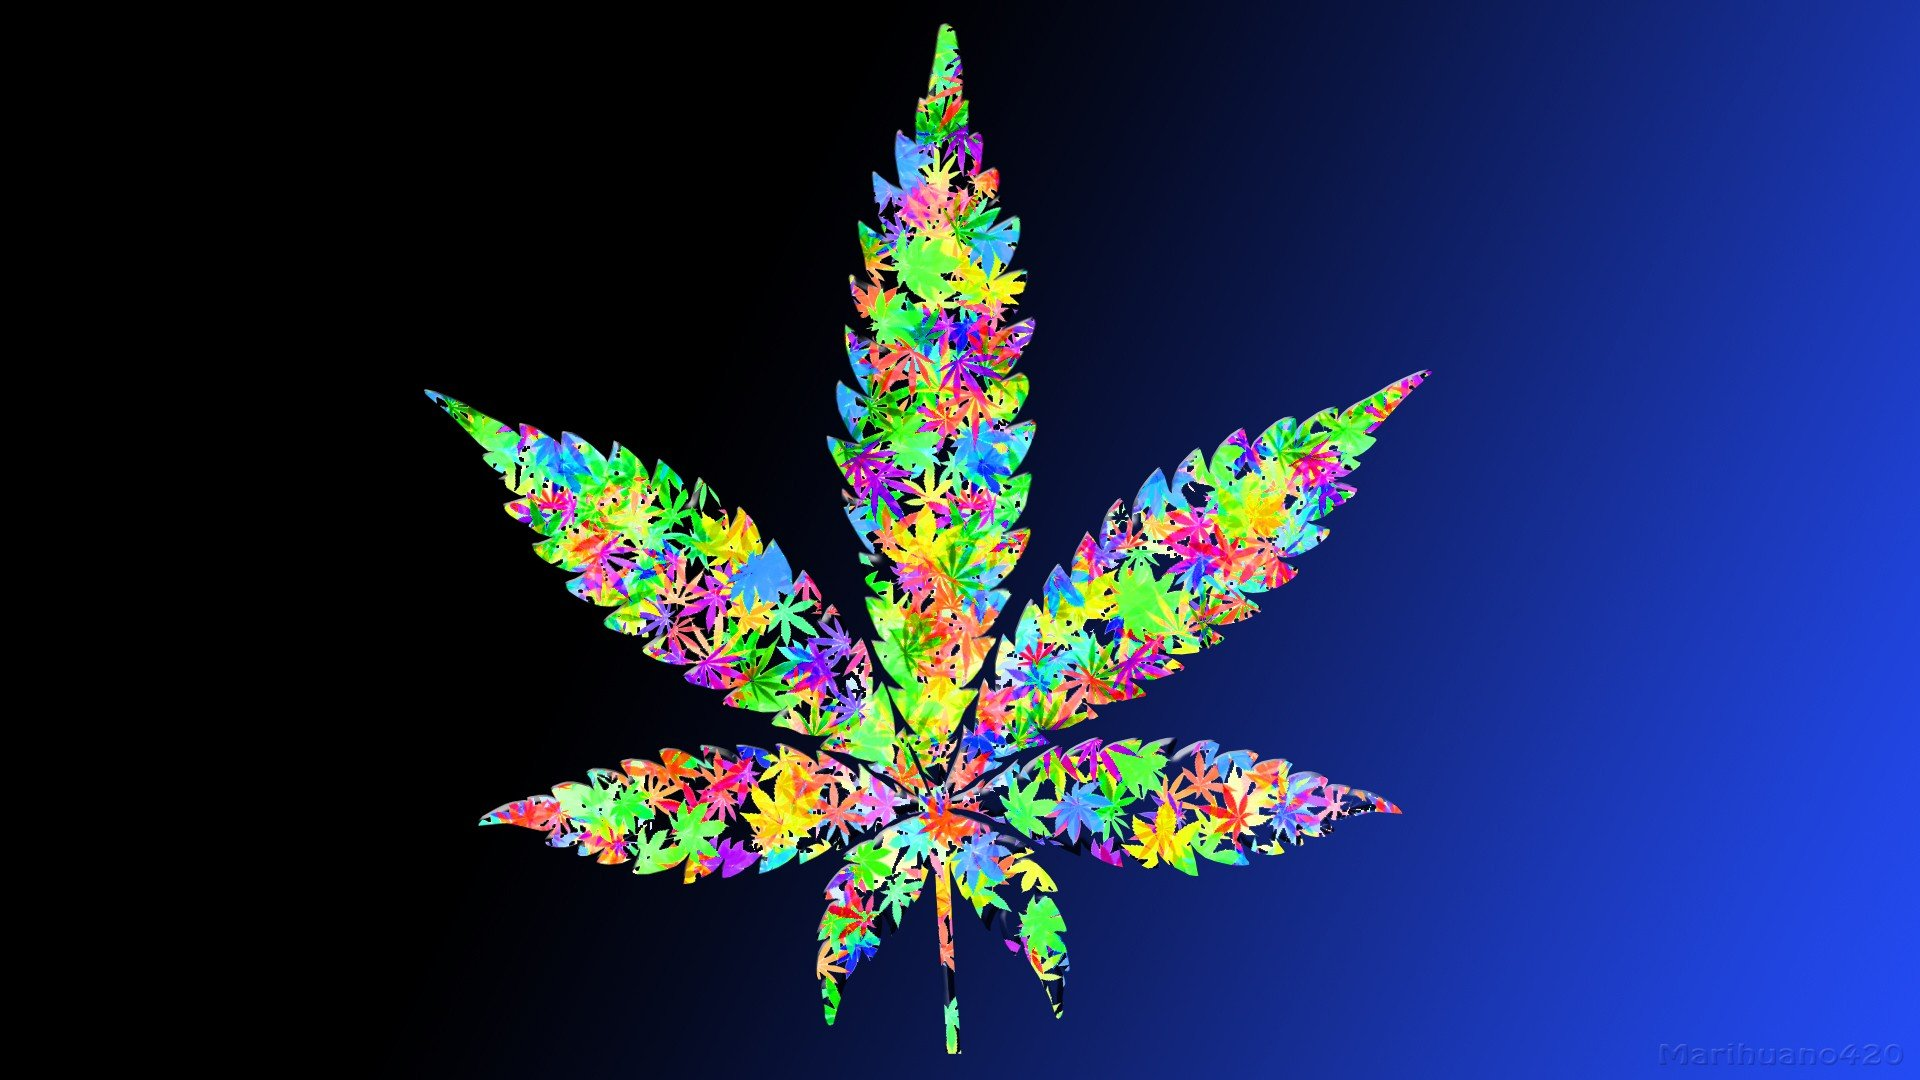 leaves marijuana weeds wallpaper 1920x1080 341187 WallpaperUP 1920x1080